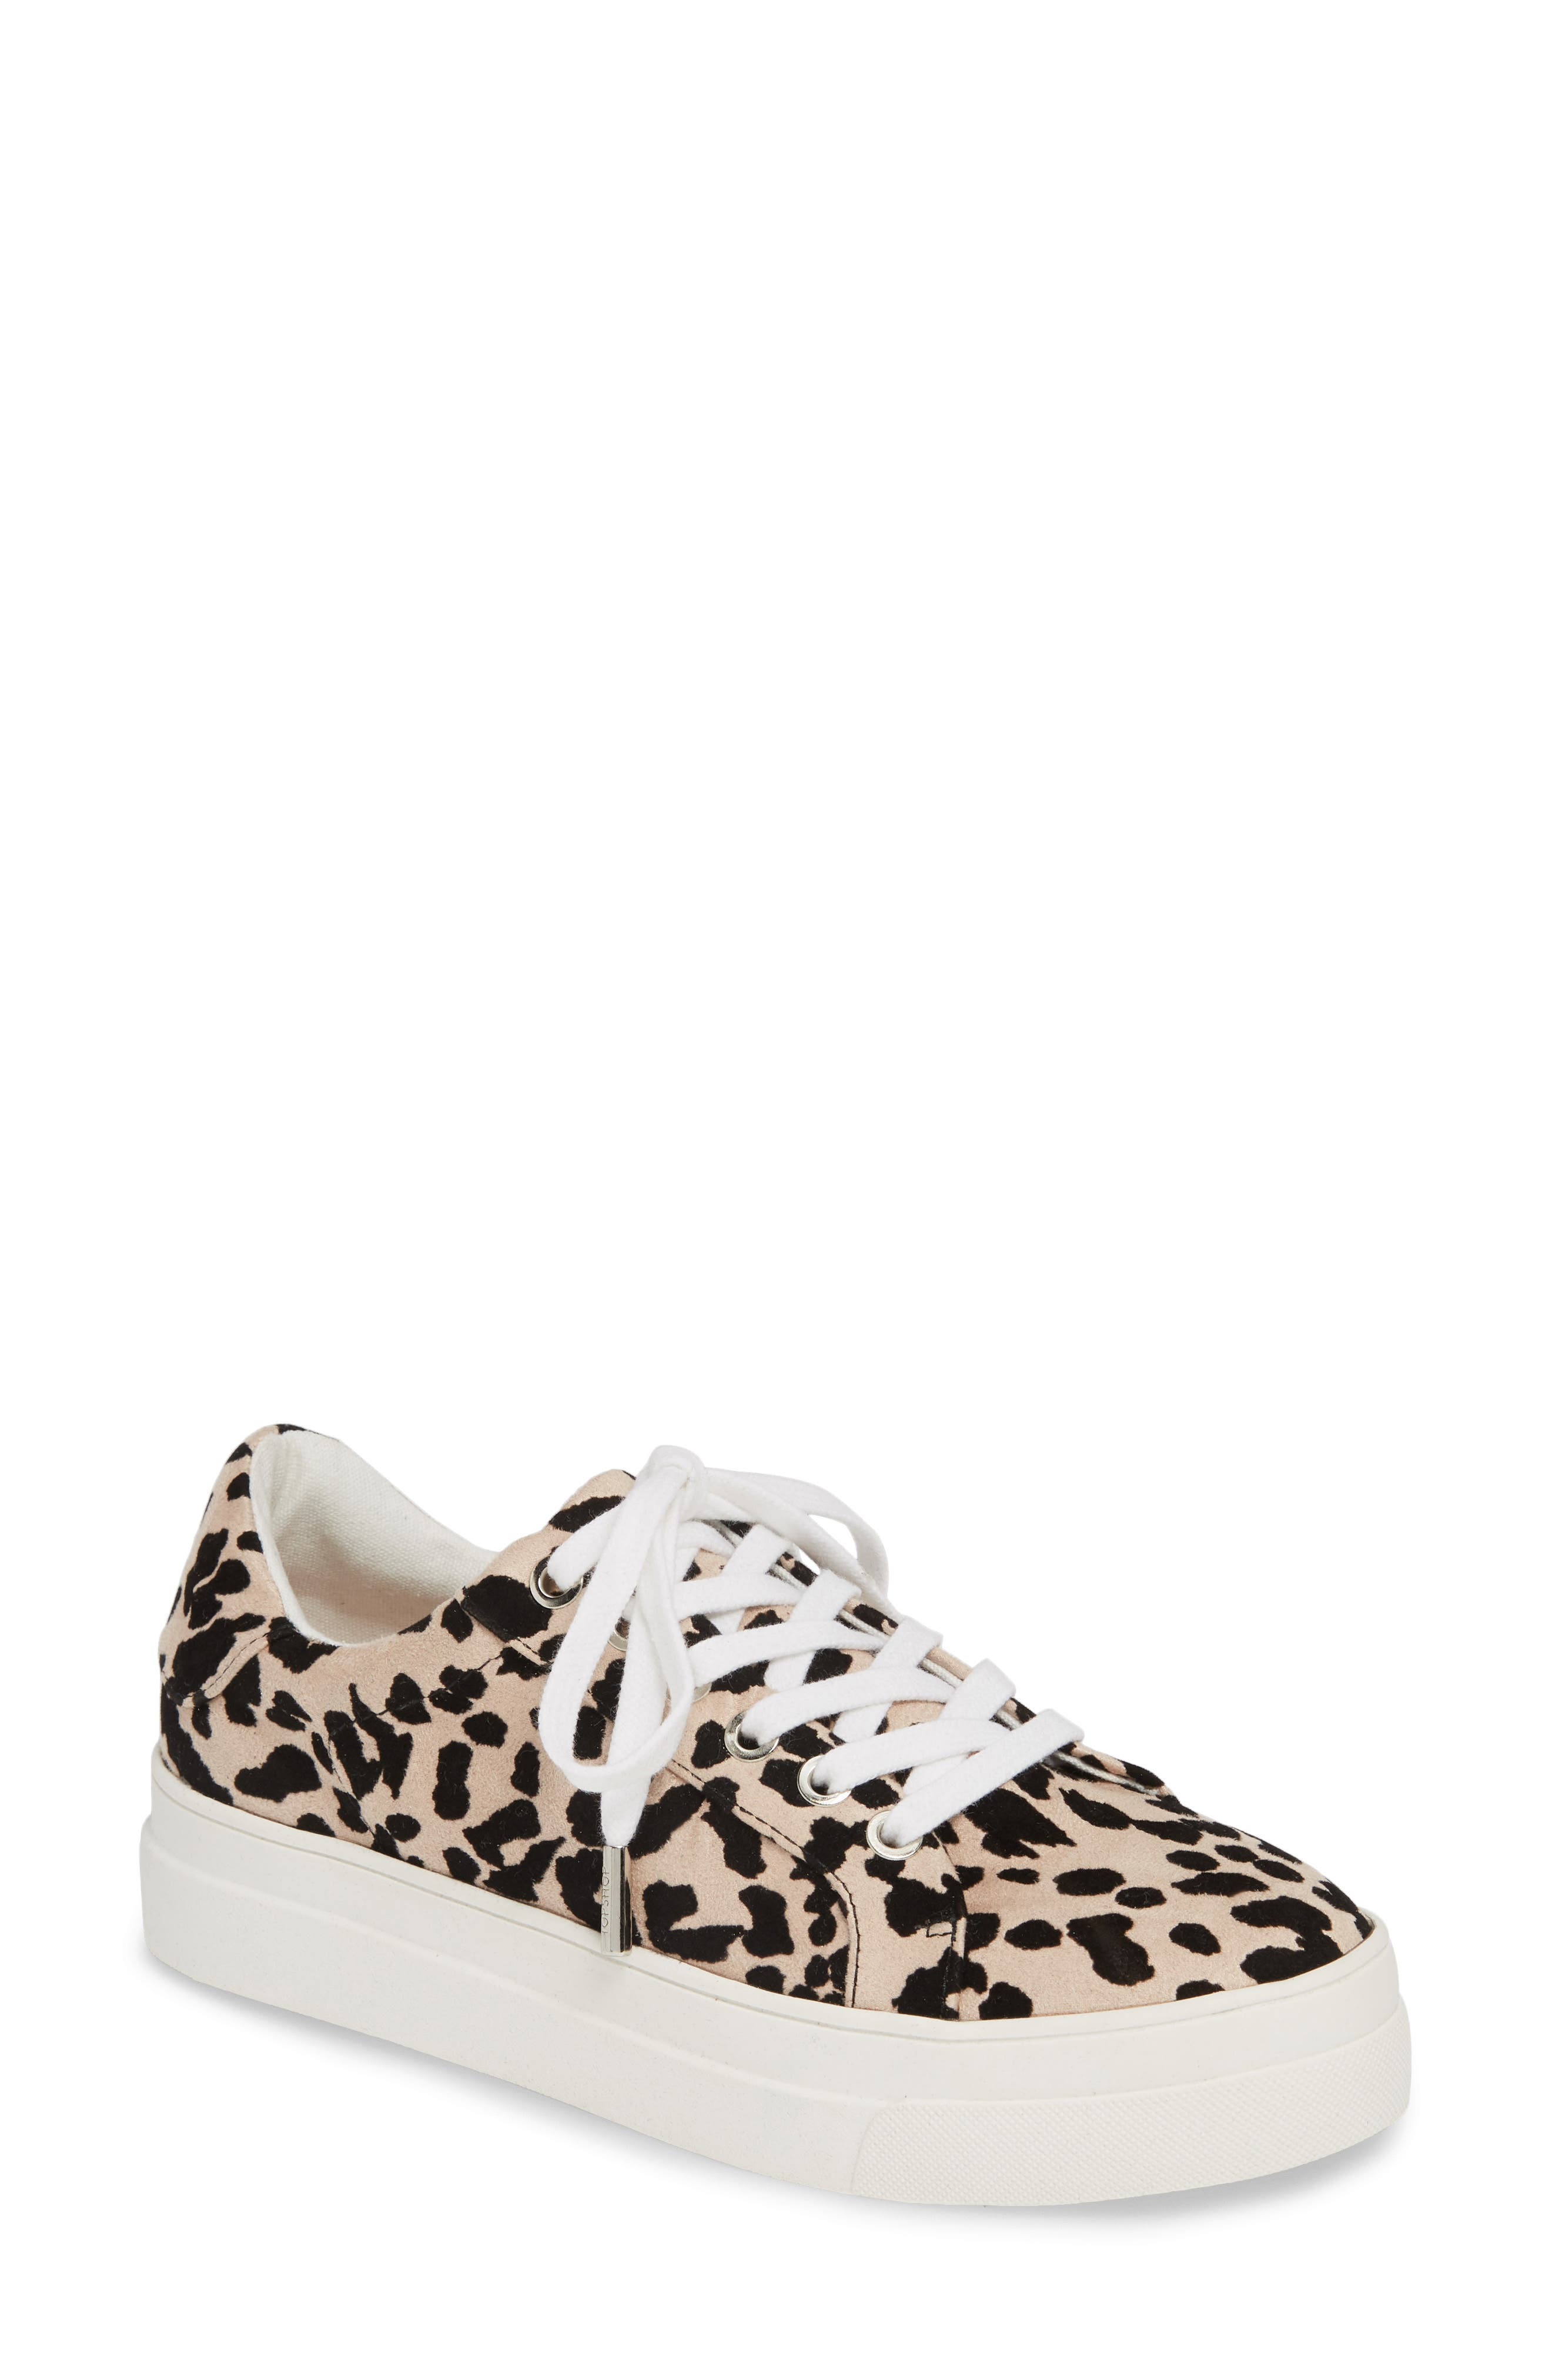 TOPSHOP, Candy Platform Sneaker, Main thumbnail 1, color, NUDE MULTI